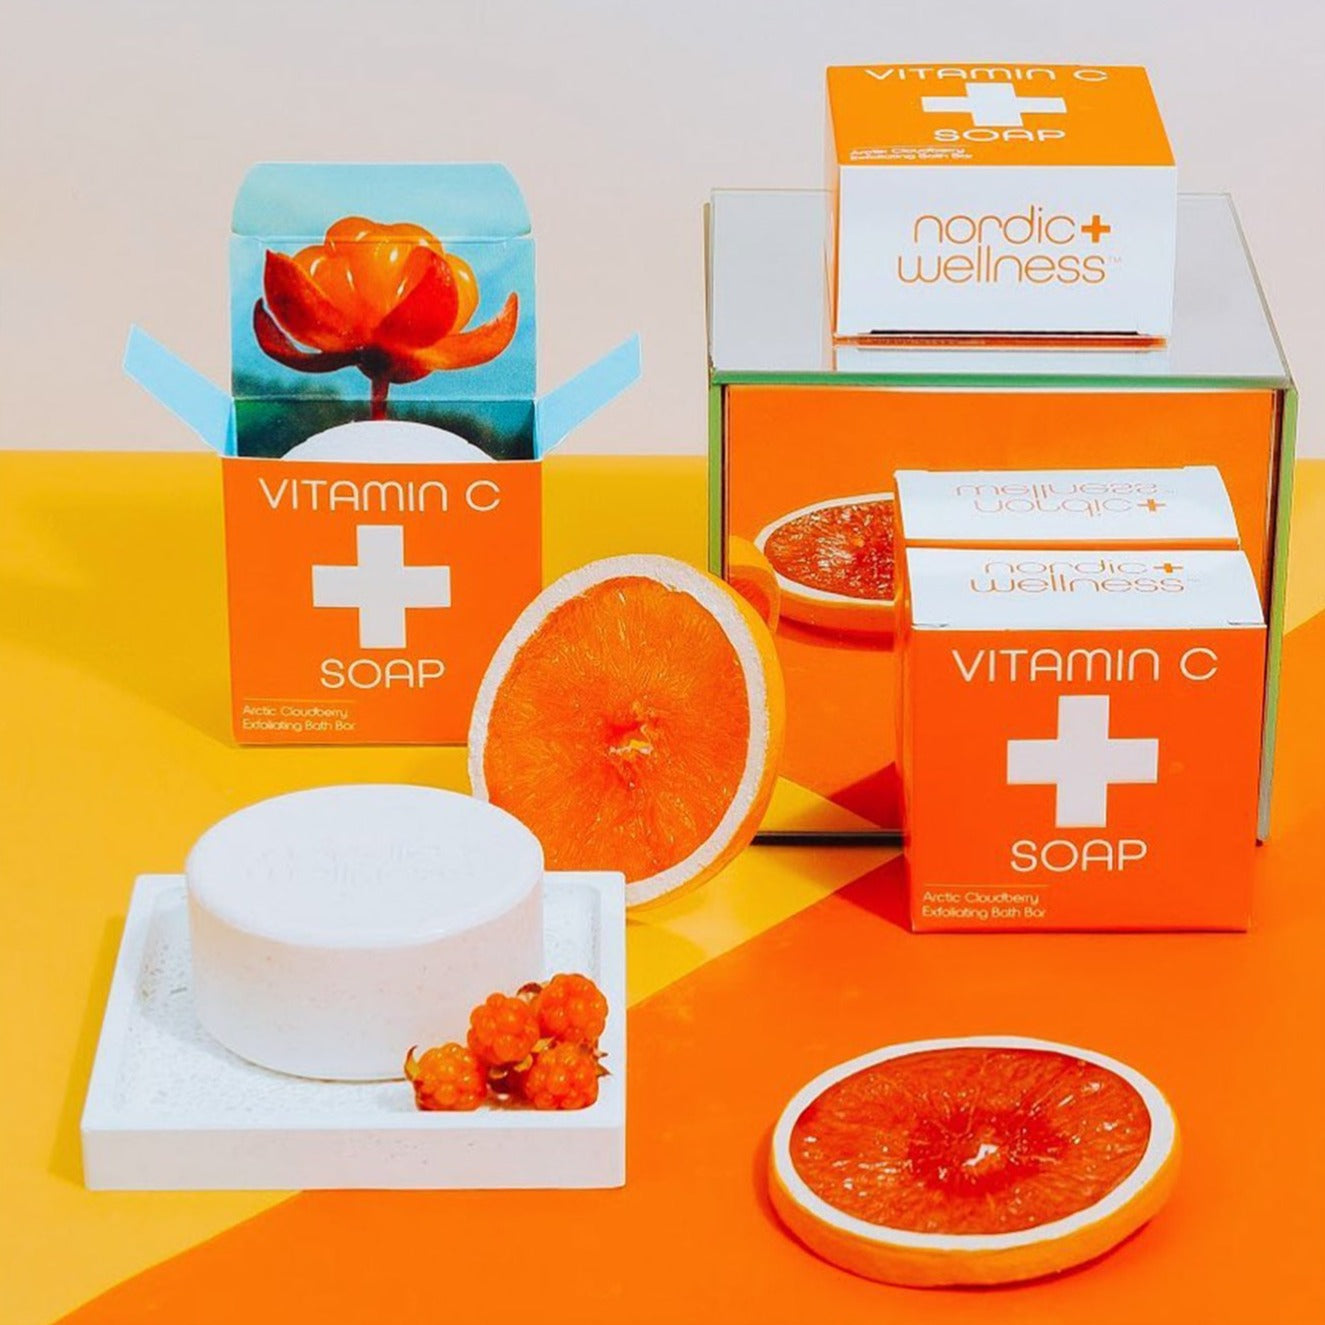 Kalastyle Nordic + Wellness Vitamin C Soap